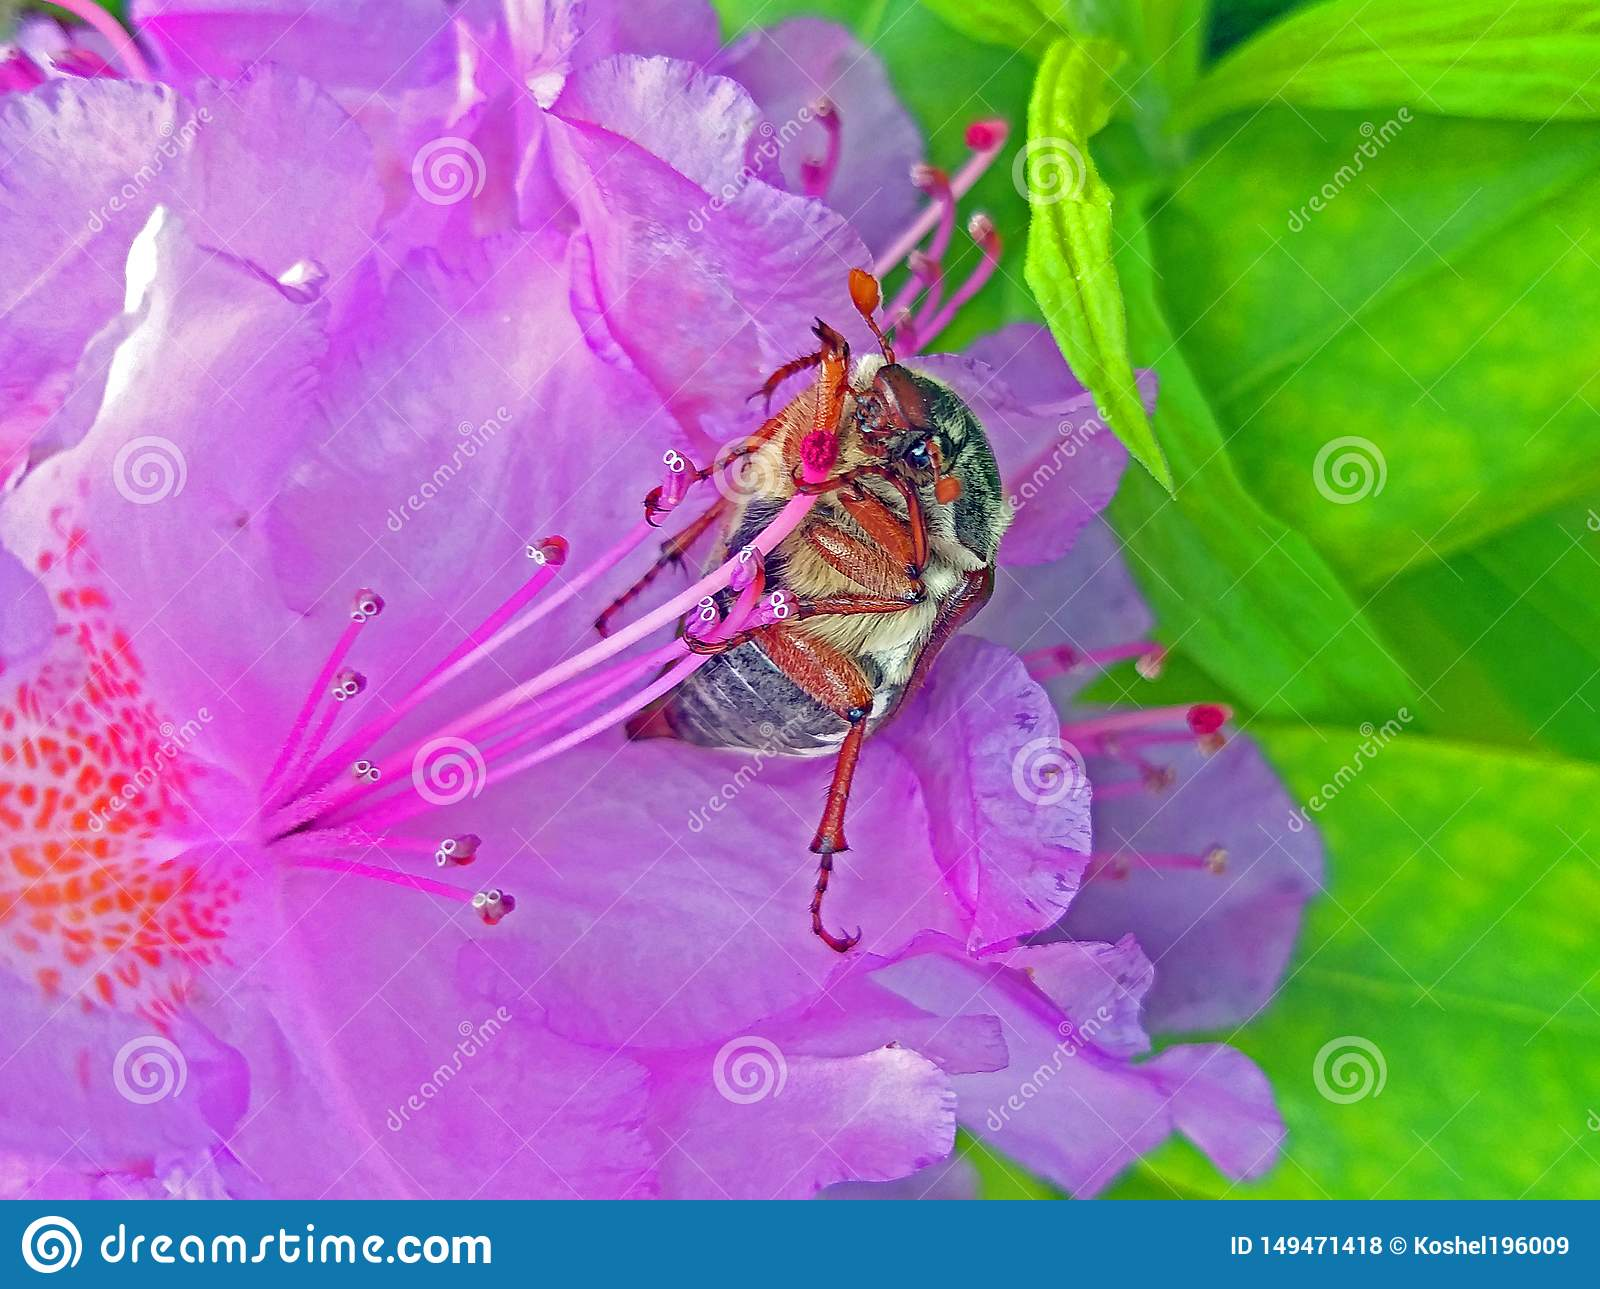 May beetle. Large insect in rhododendron flower. Large petals pink.